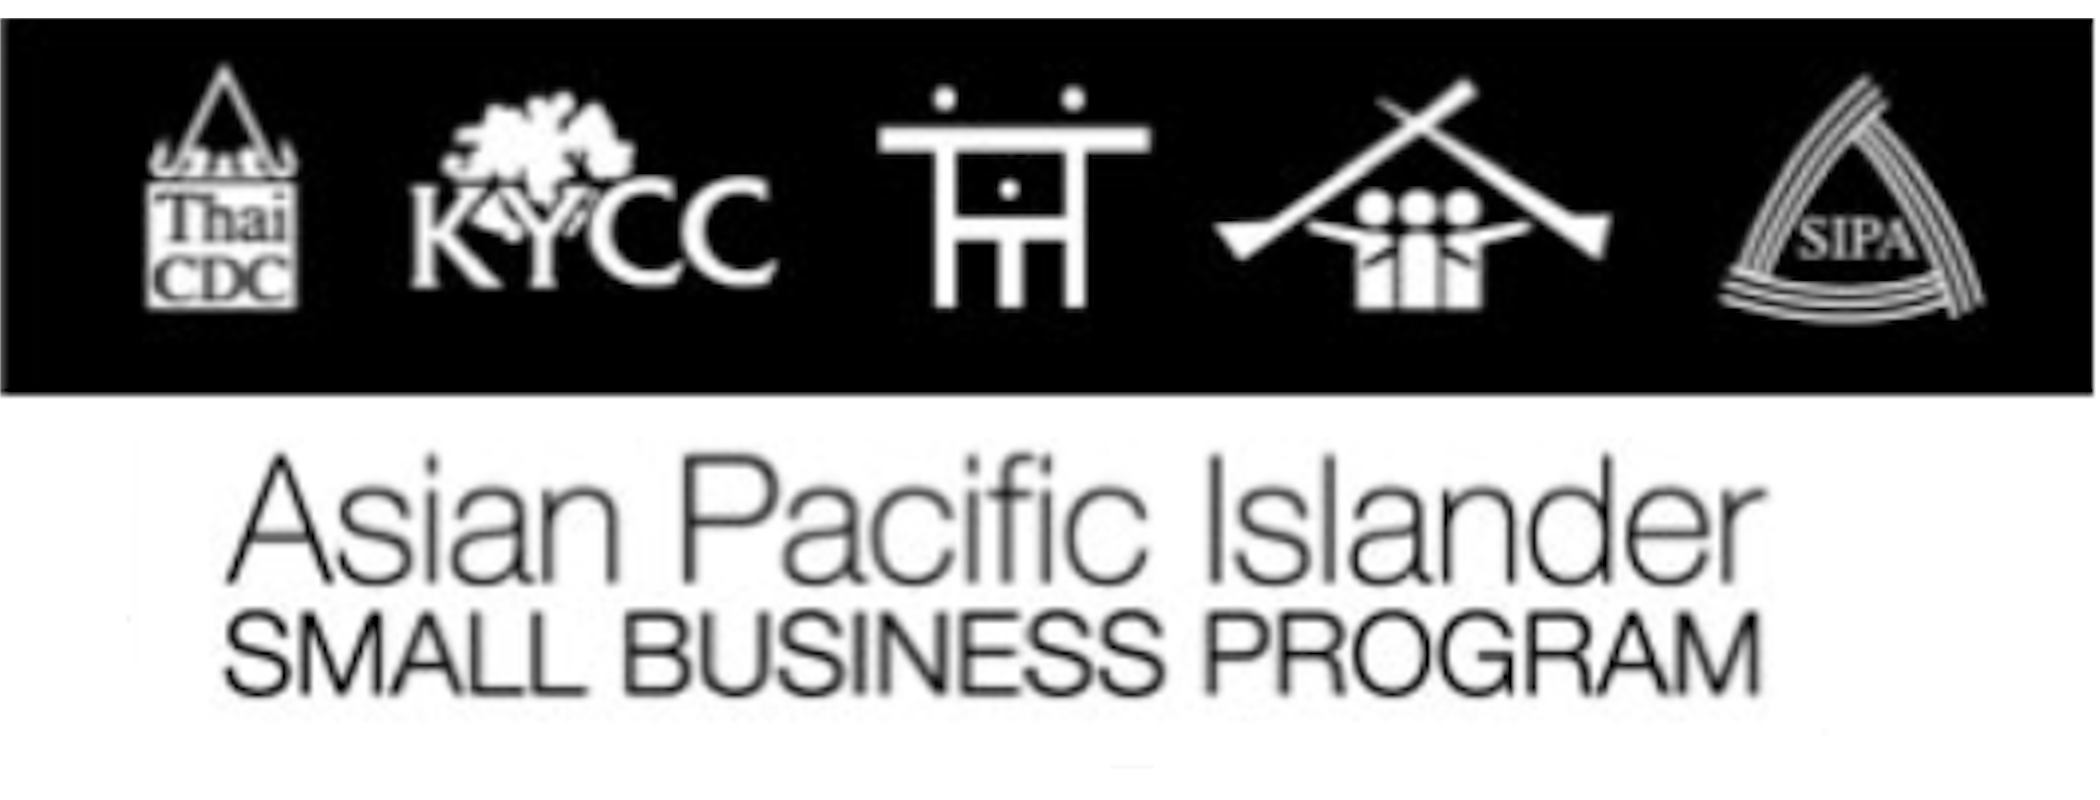 - Asian Pacific Islander Small Business Program231 E. 3rd St., Suite G-106 Los Angeles 90013(213) 473-1605 | apisbp.org